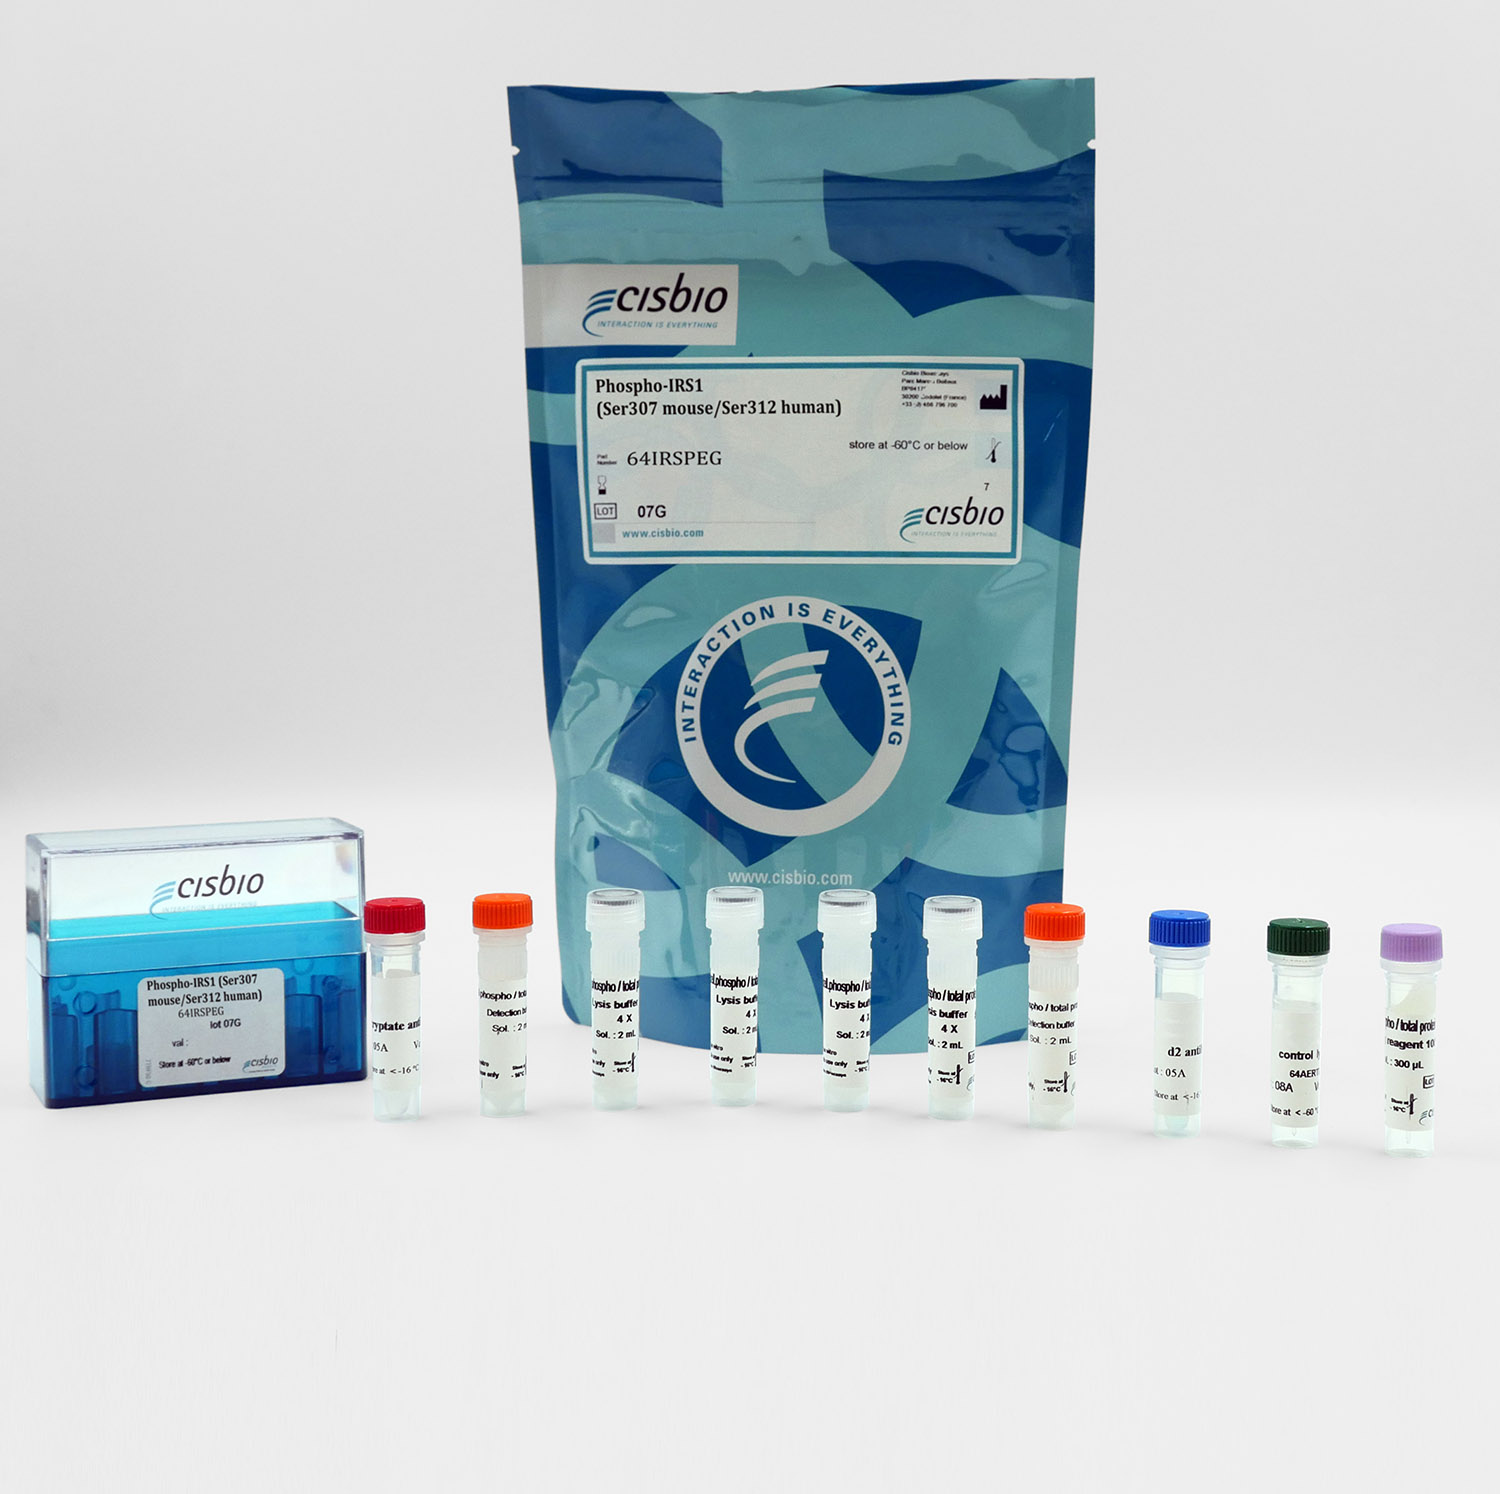 Phospho-IRS1 (Ser307 mouse/Ser312 human) cellular kit